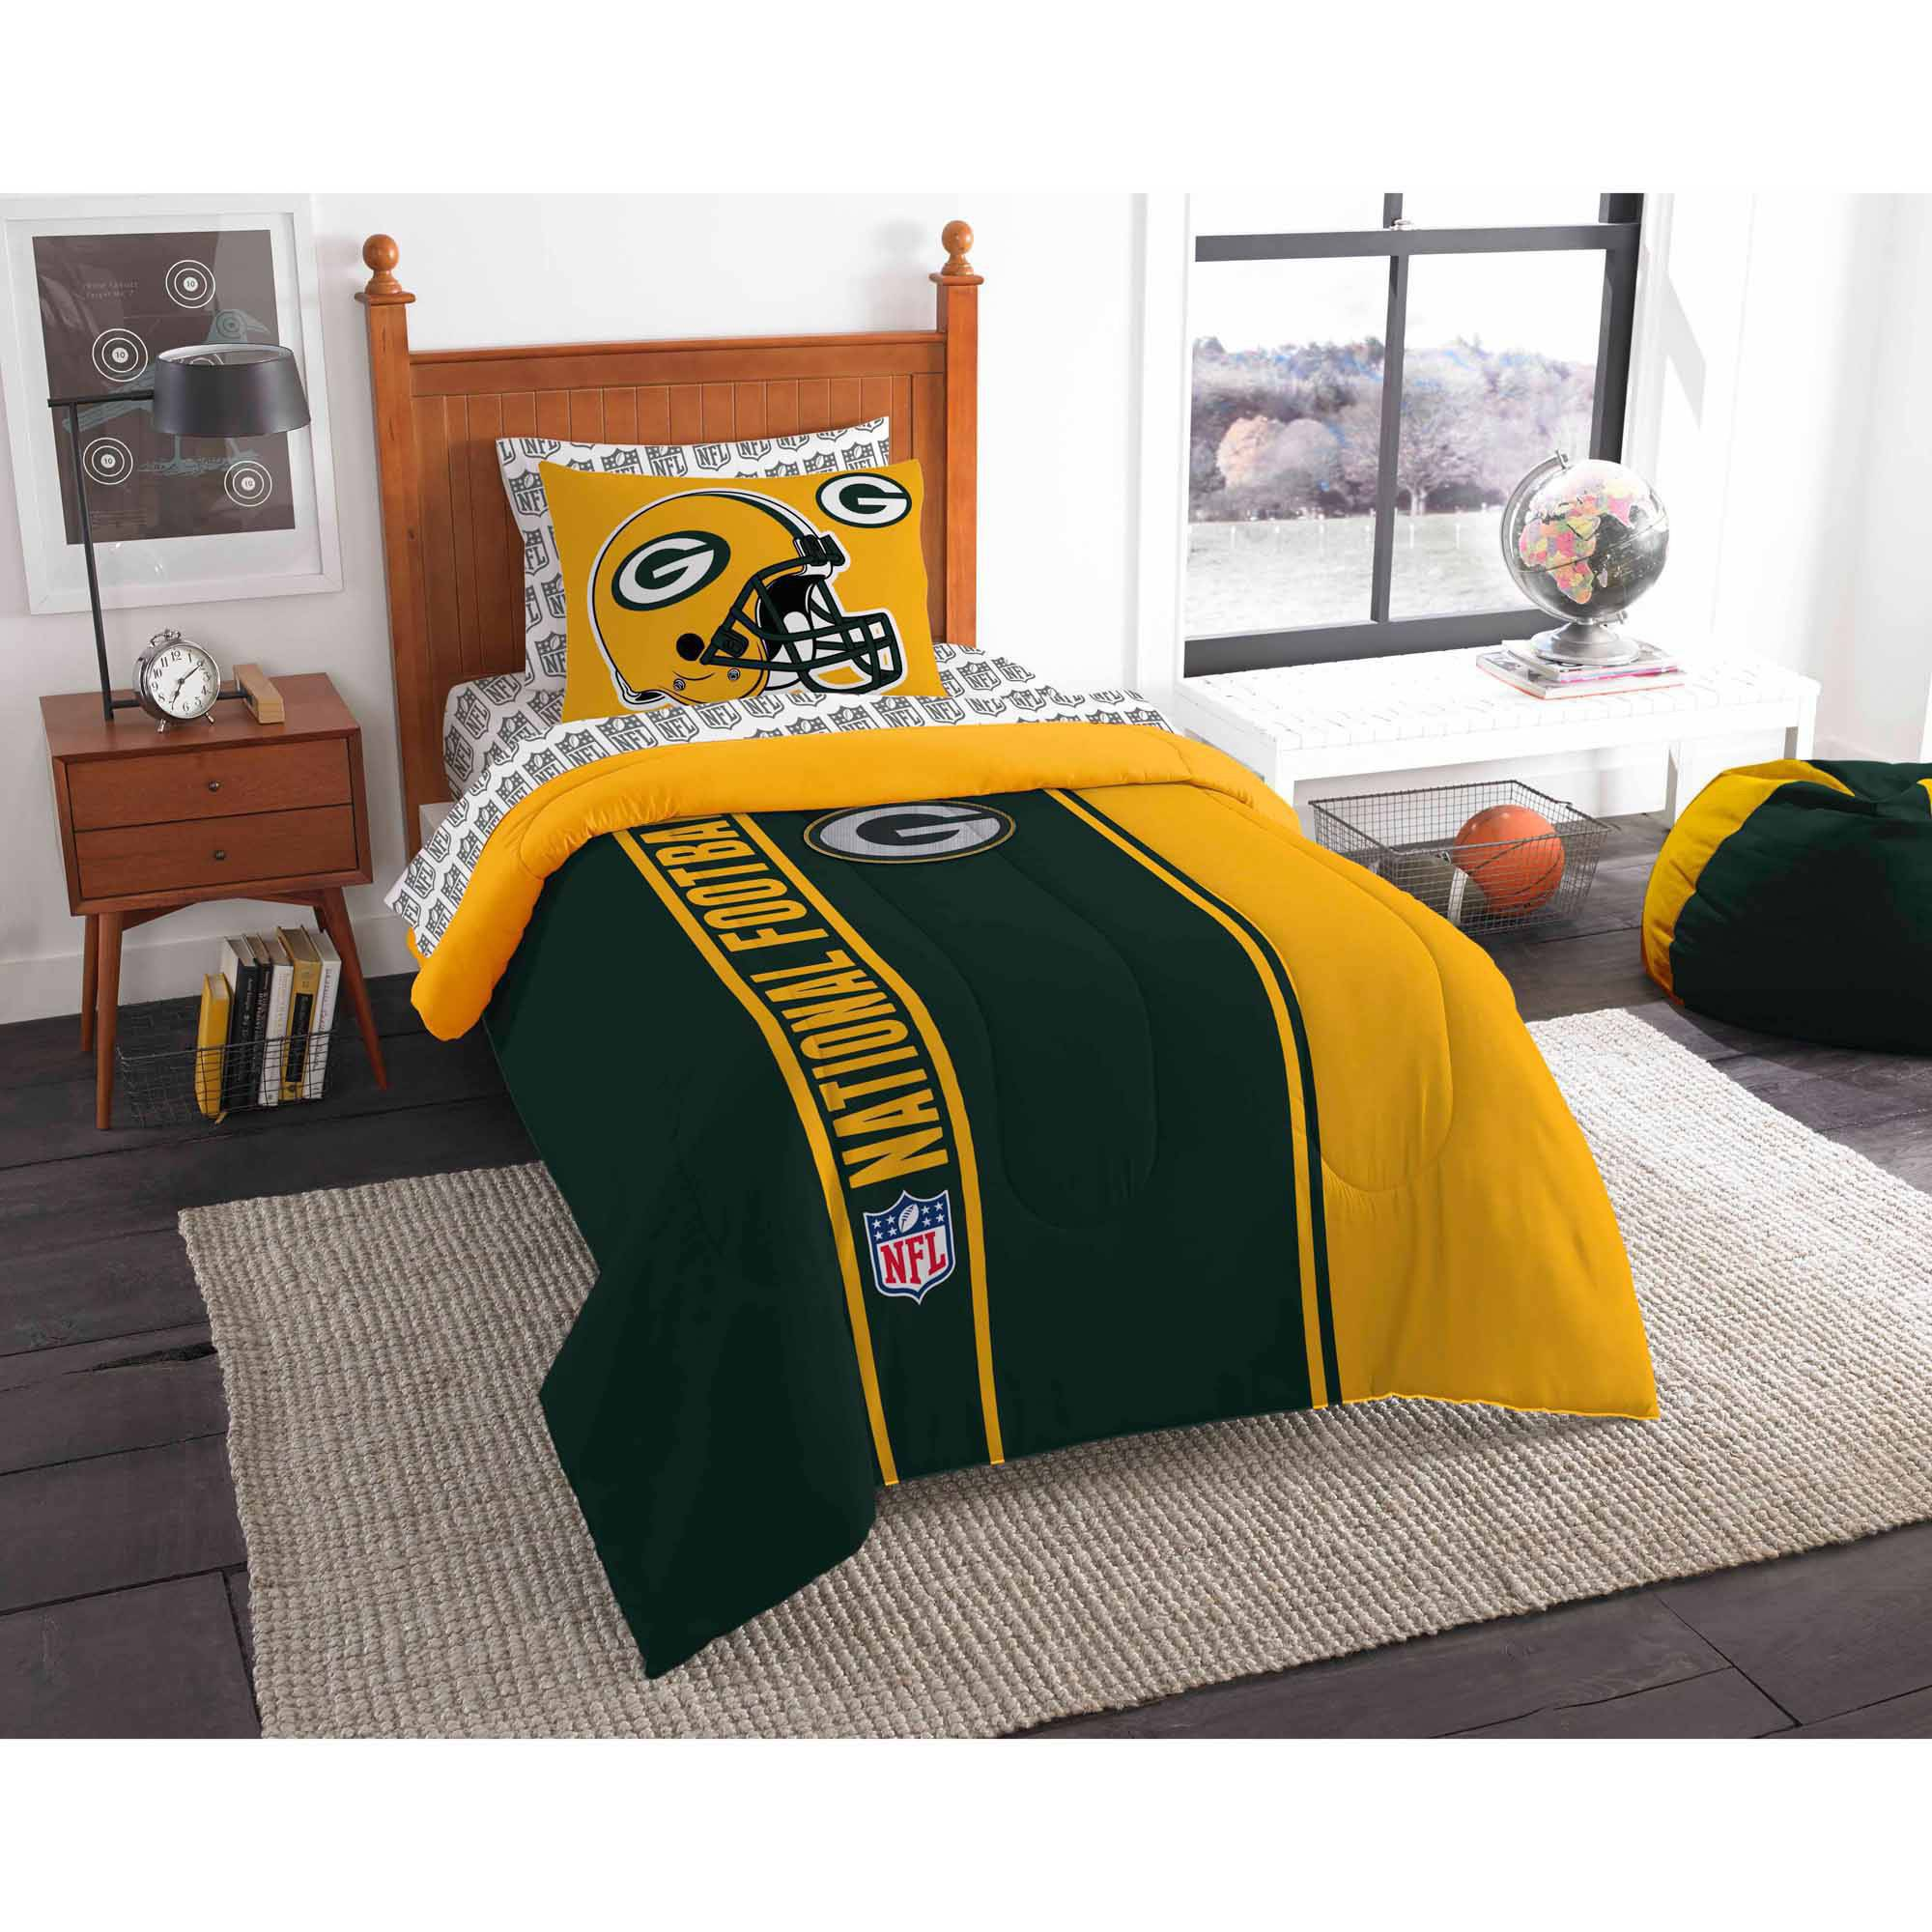 Delicieux NFL Green Bay Packers Soft And Cozy Bed In A Bag Complete Bedding Set    Walmart.com